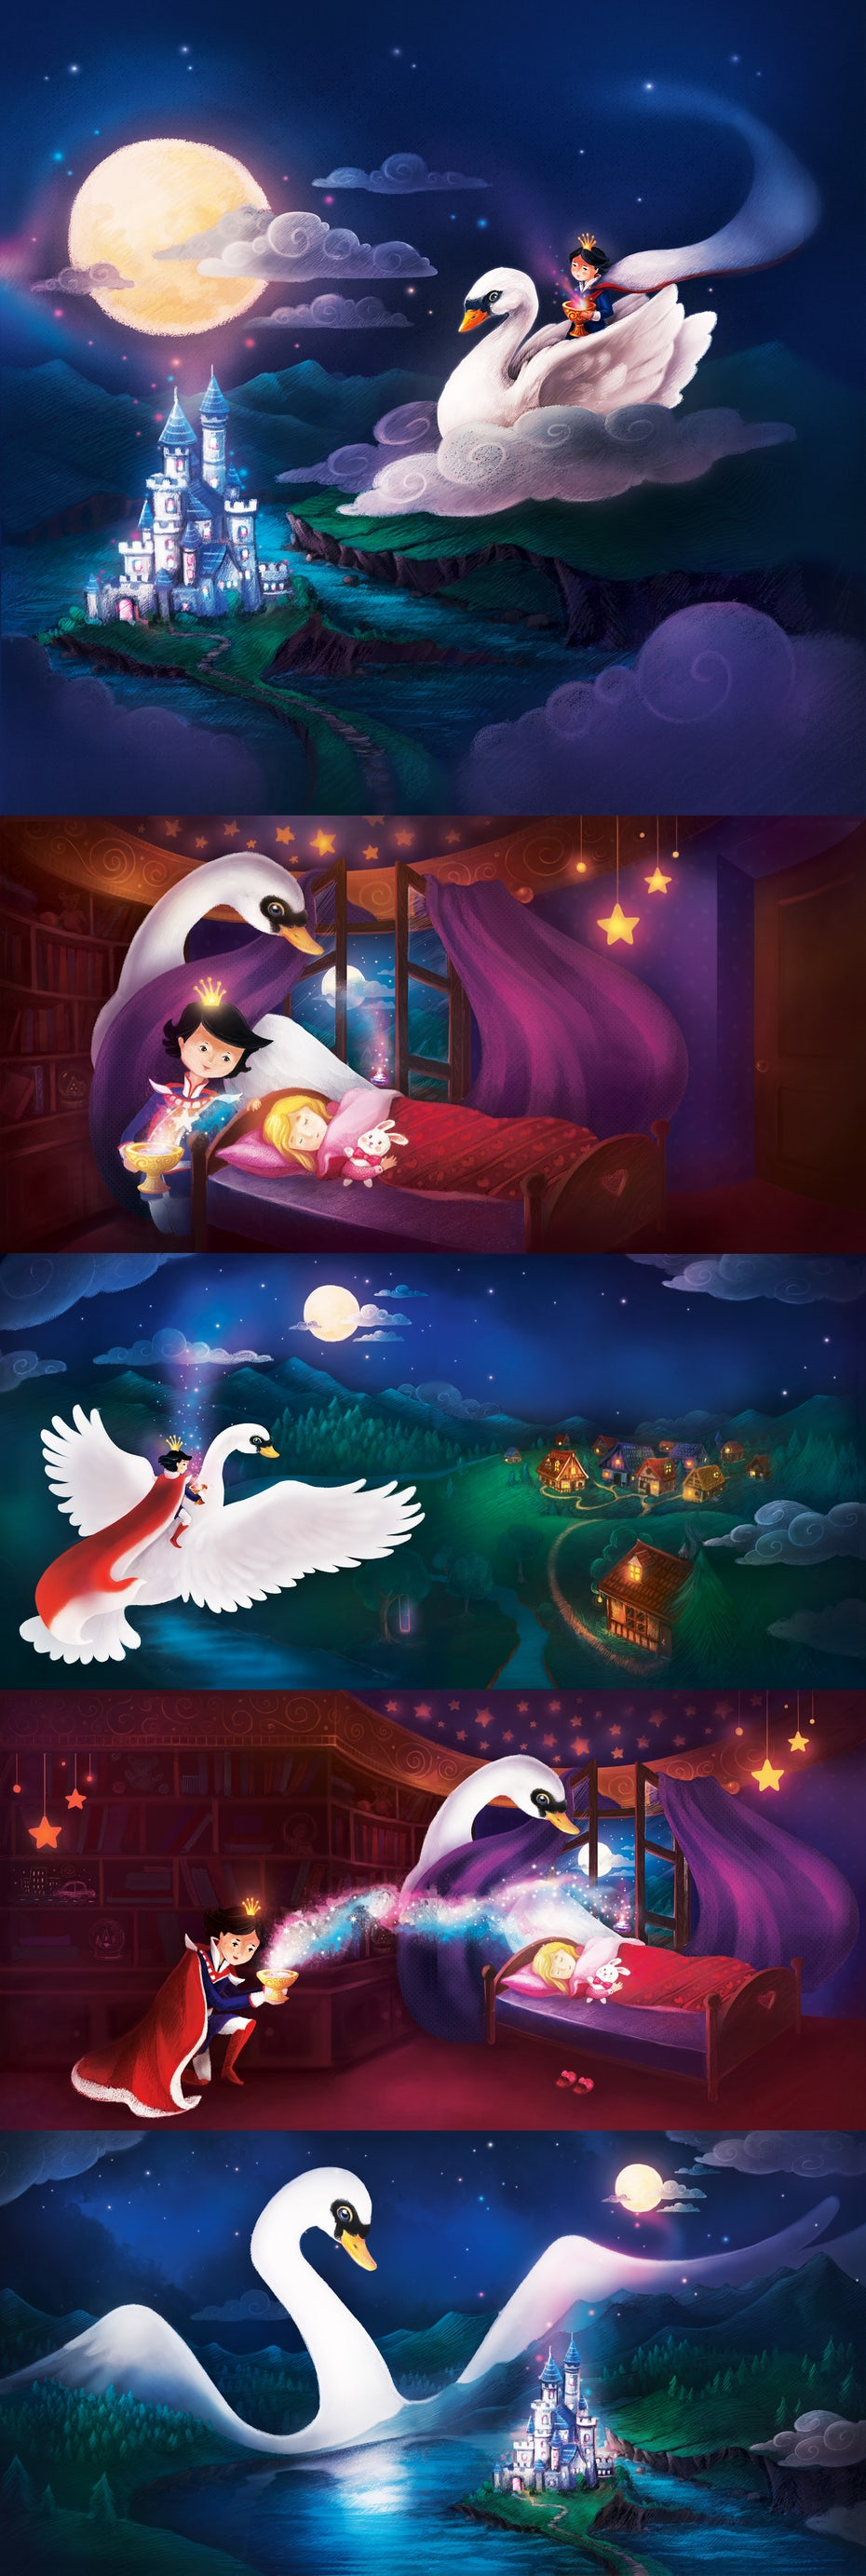 magical swan book illustrations